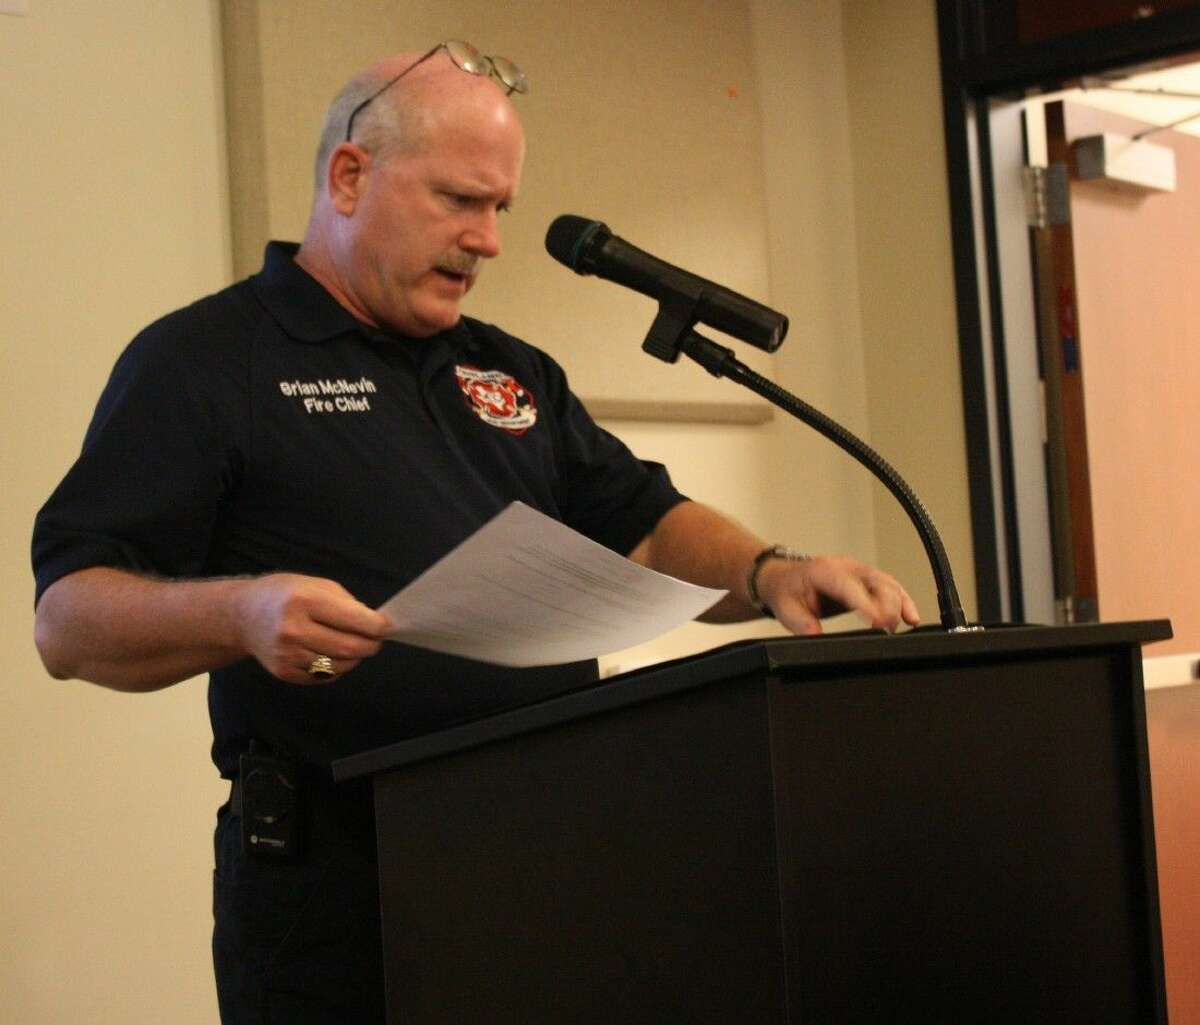 Brian McNevin makes a presentation to the Cleveland City Council in this June 2014 photo. McNevin was fire chief for the city until earlier this week when he was let go. He had served two years in that capacity.